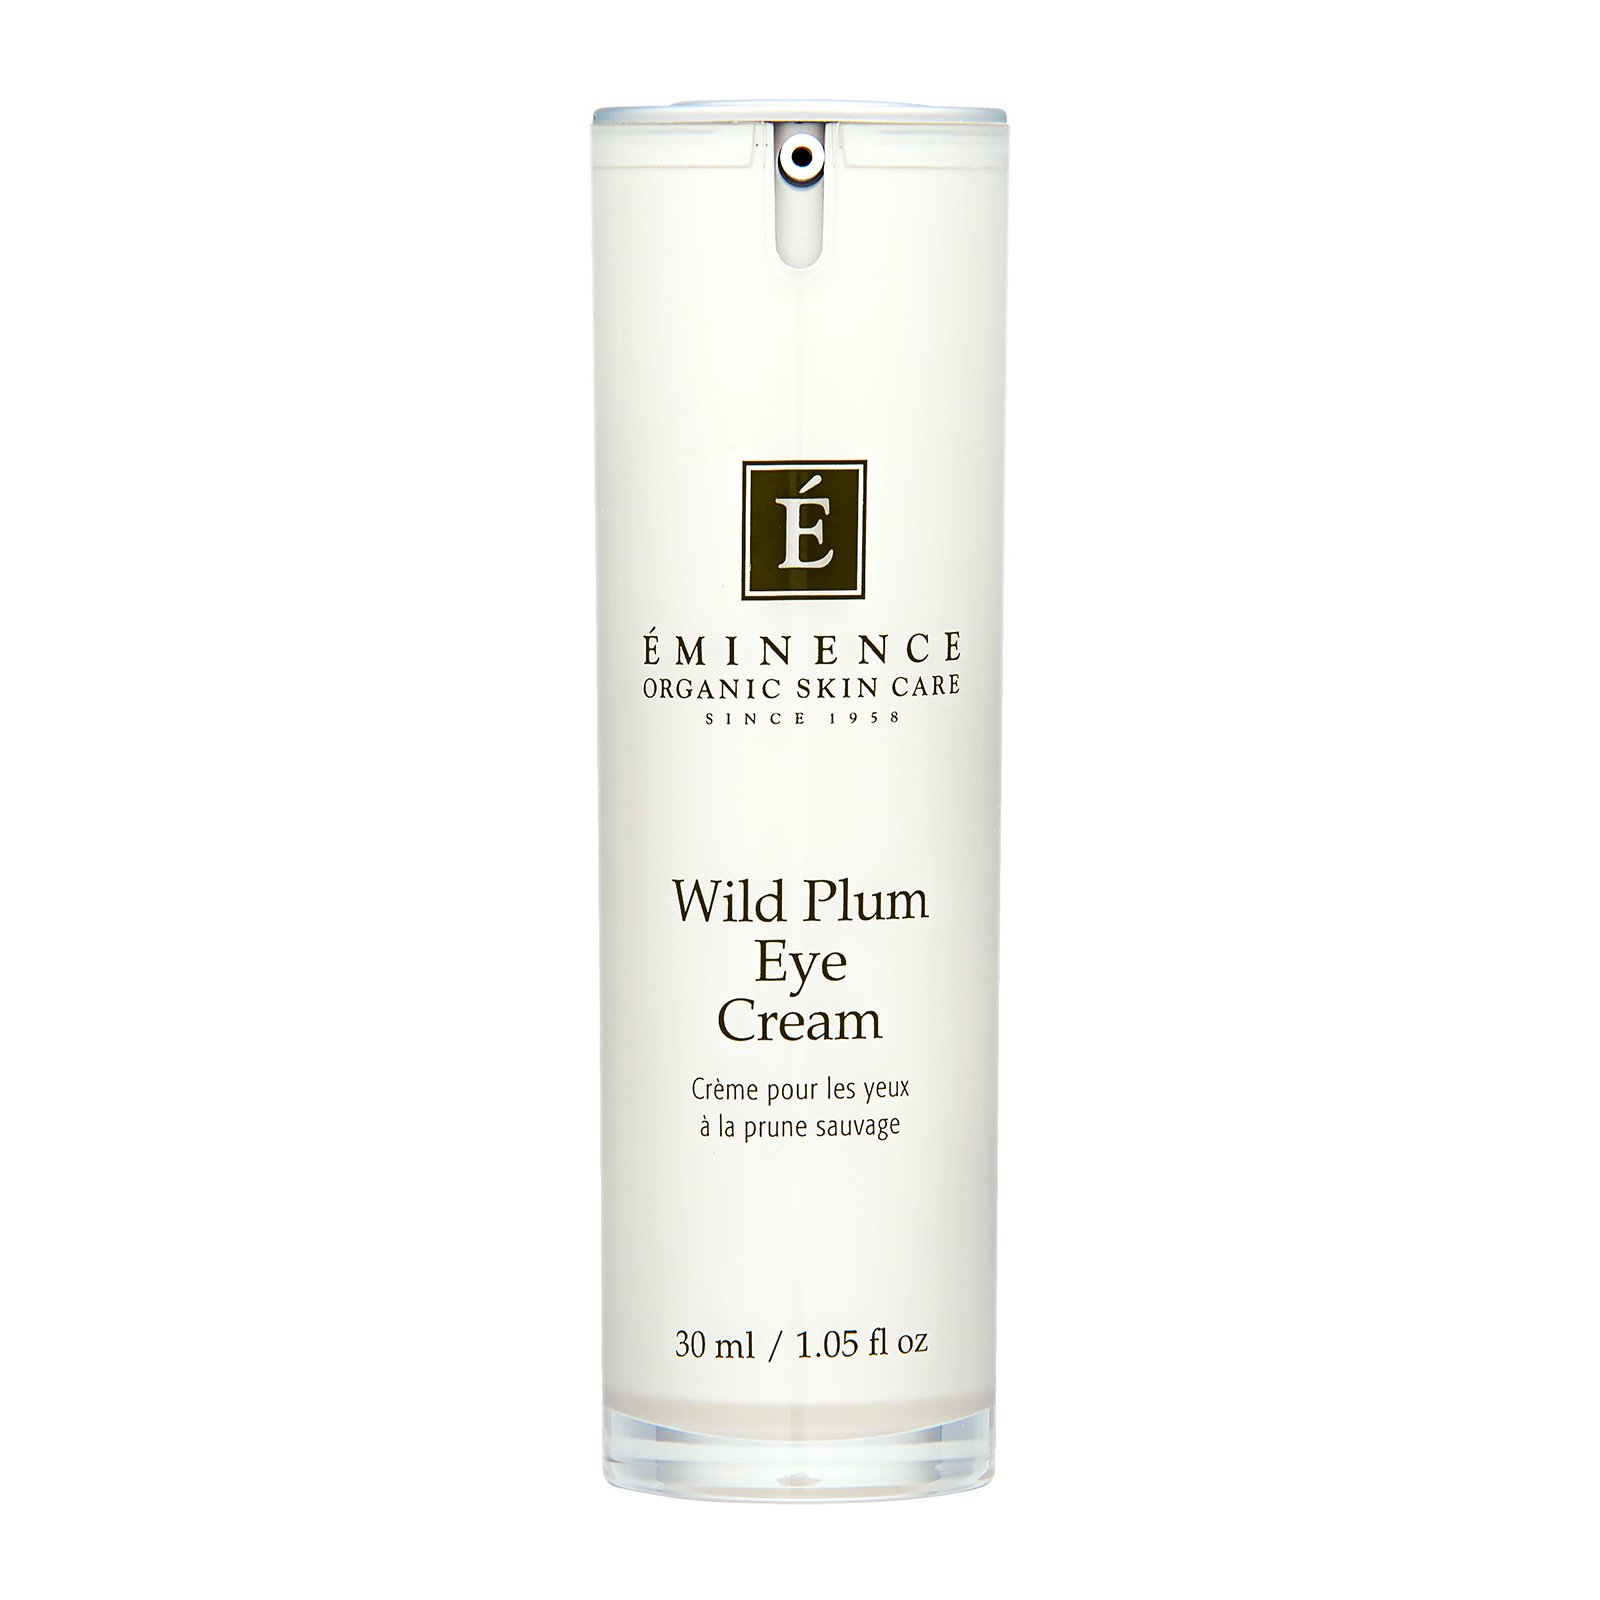 Wild Plum Eye Cream 1.05oz